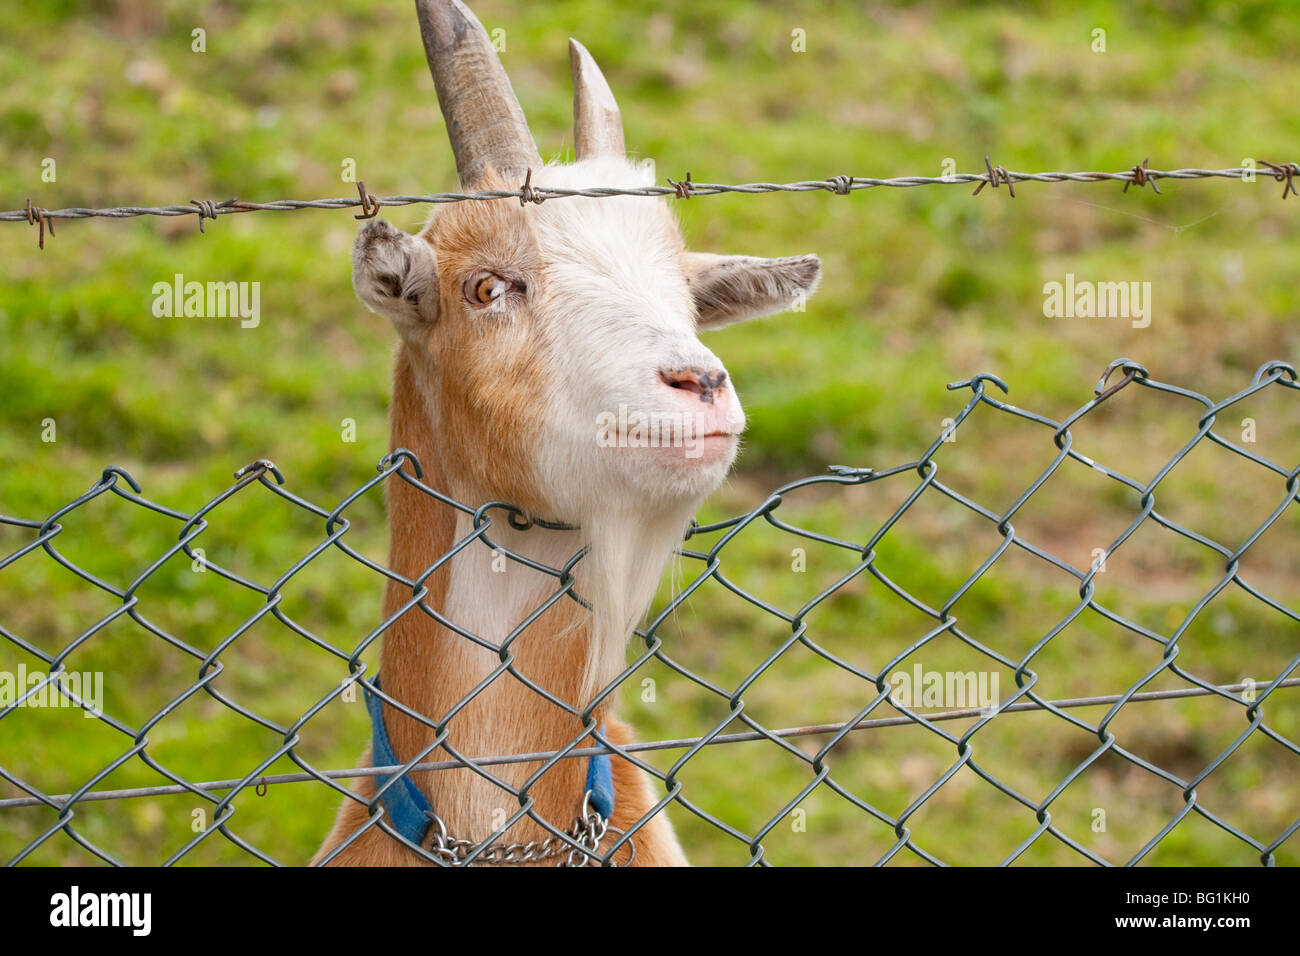 Goat behind barbed wire fence - Stock Image